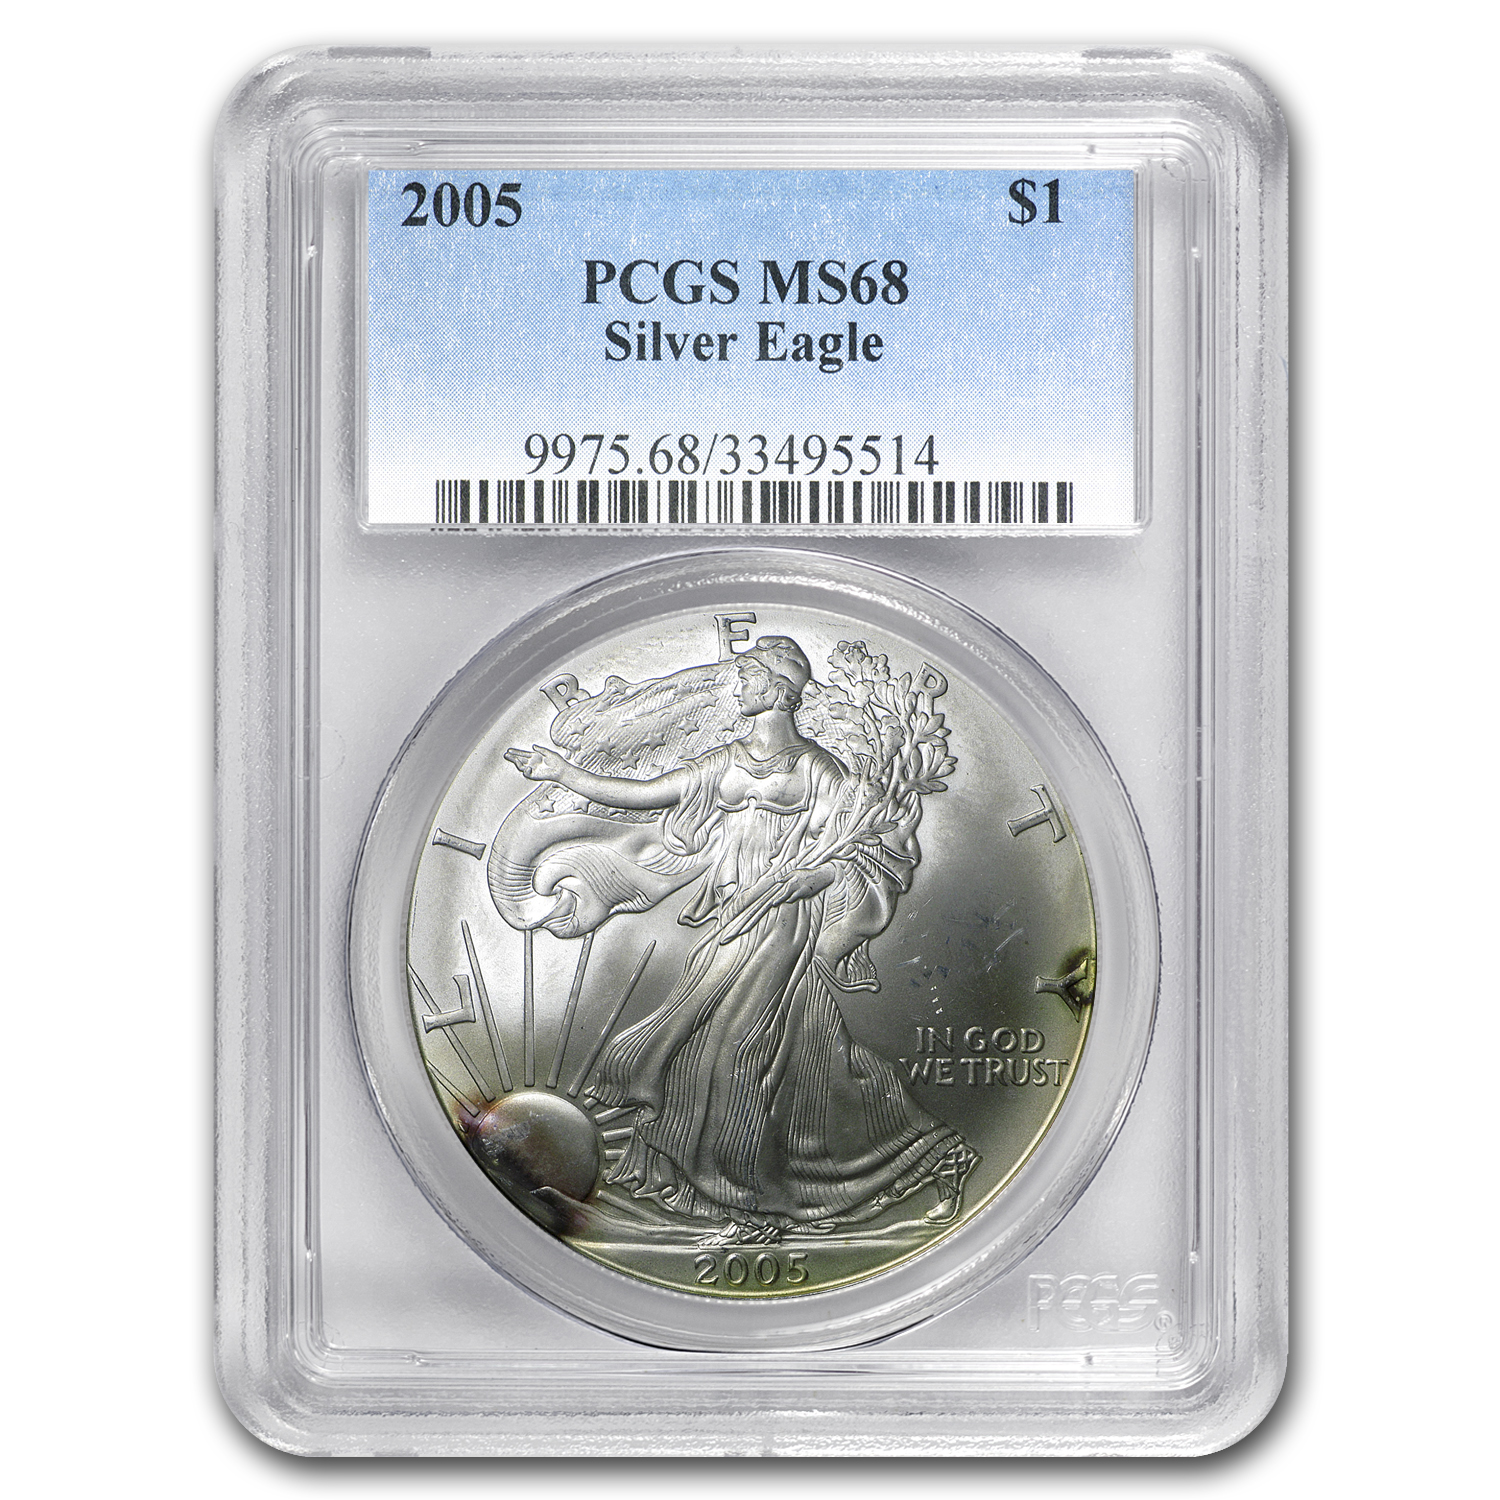 2005 Silver American Eagle MS-68 PCGS (Rainbow Toning)